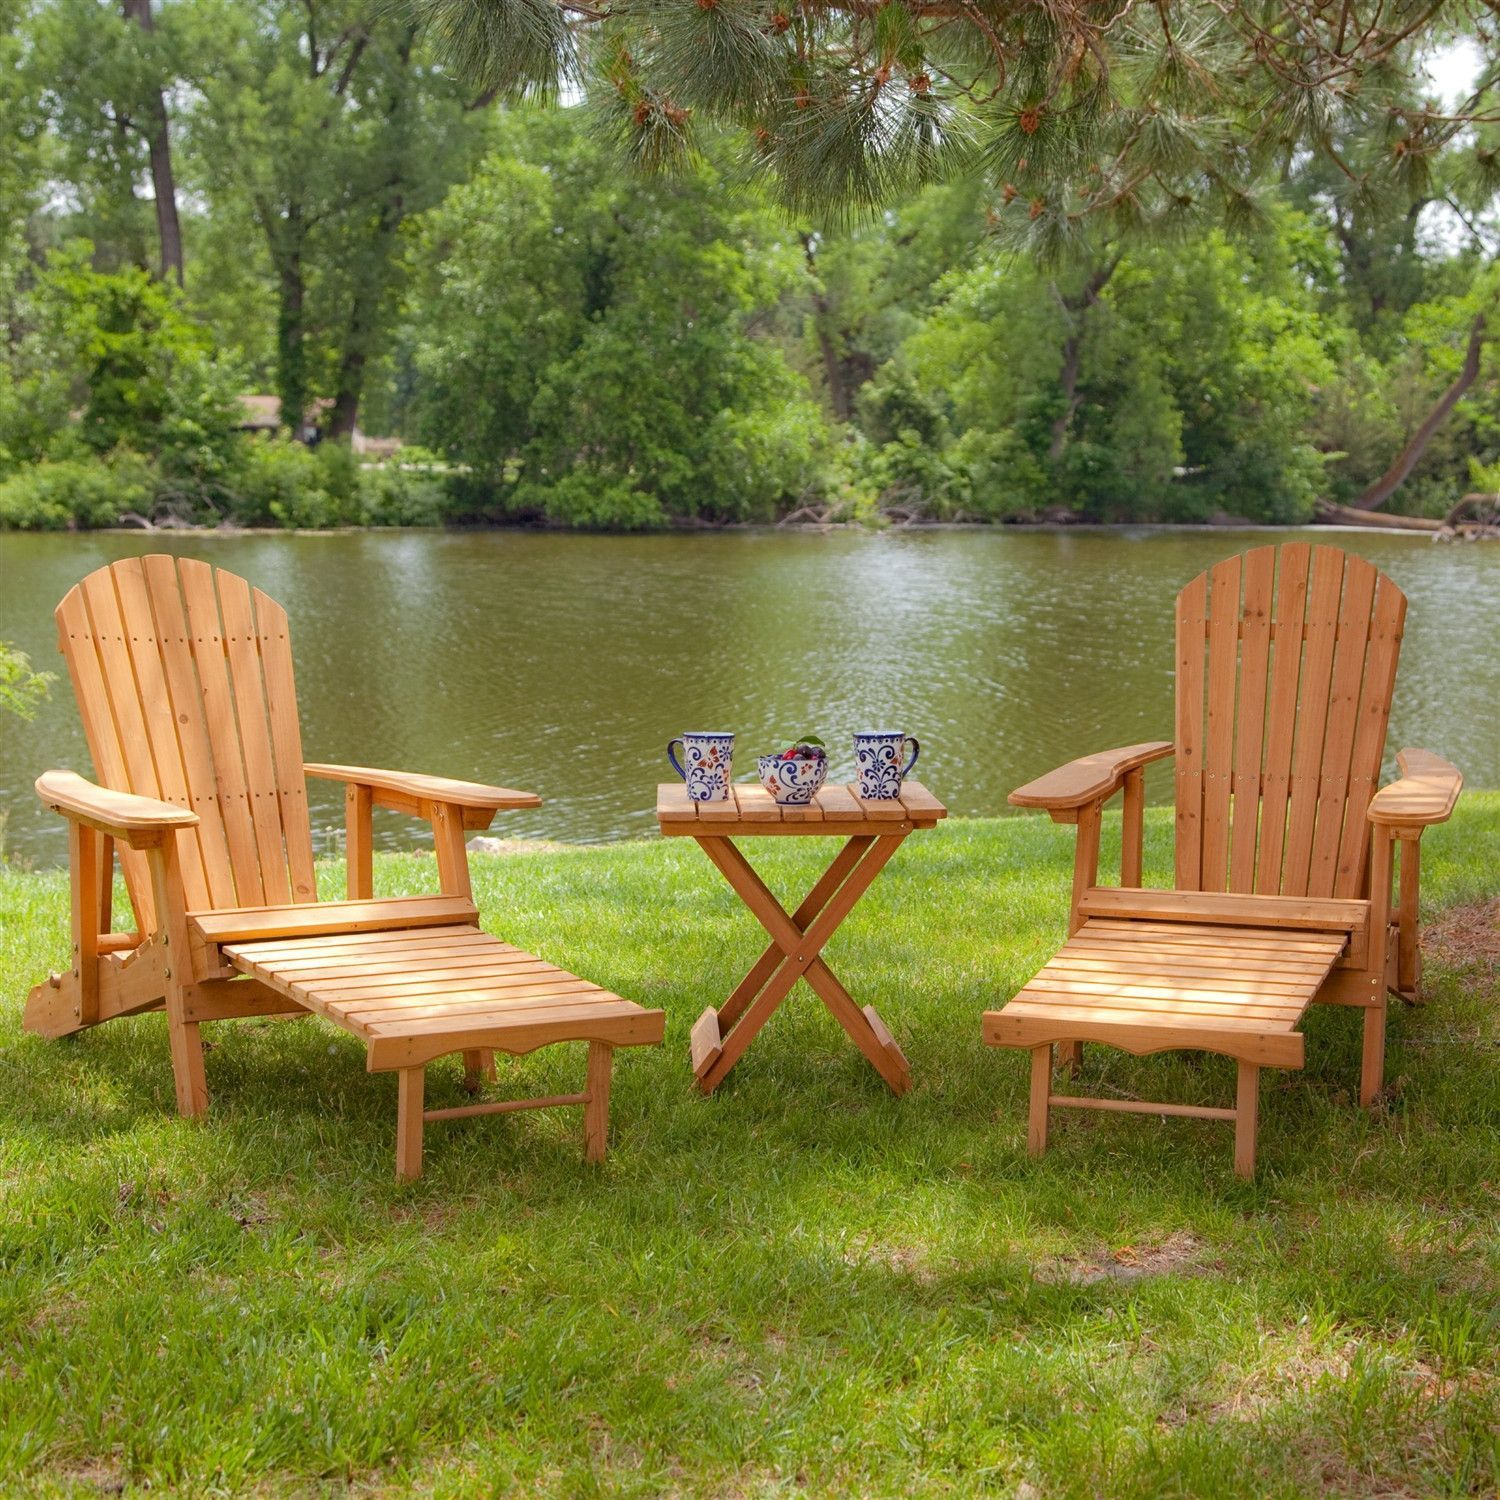 3-piece Patio Furniture Set With 2 Adirondack Chairs And